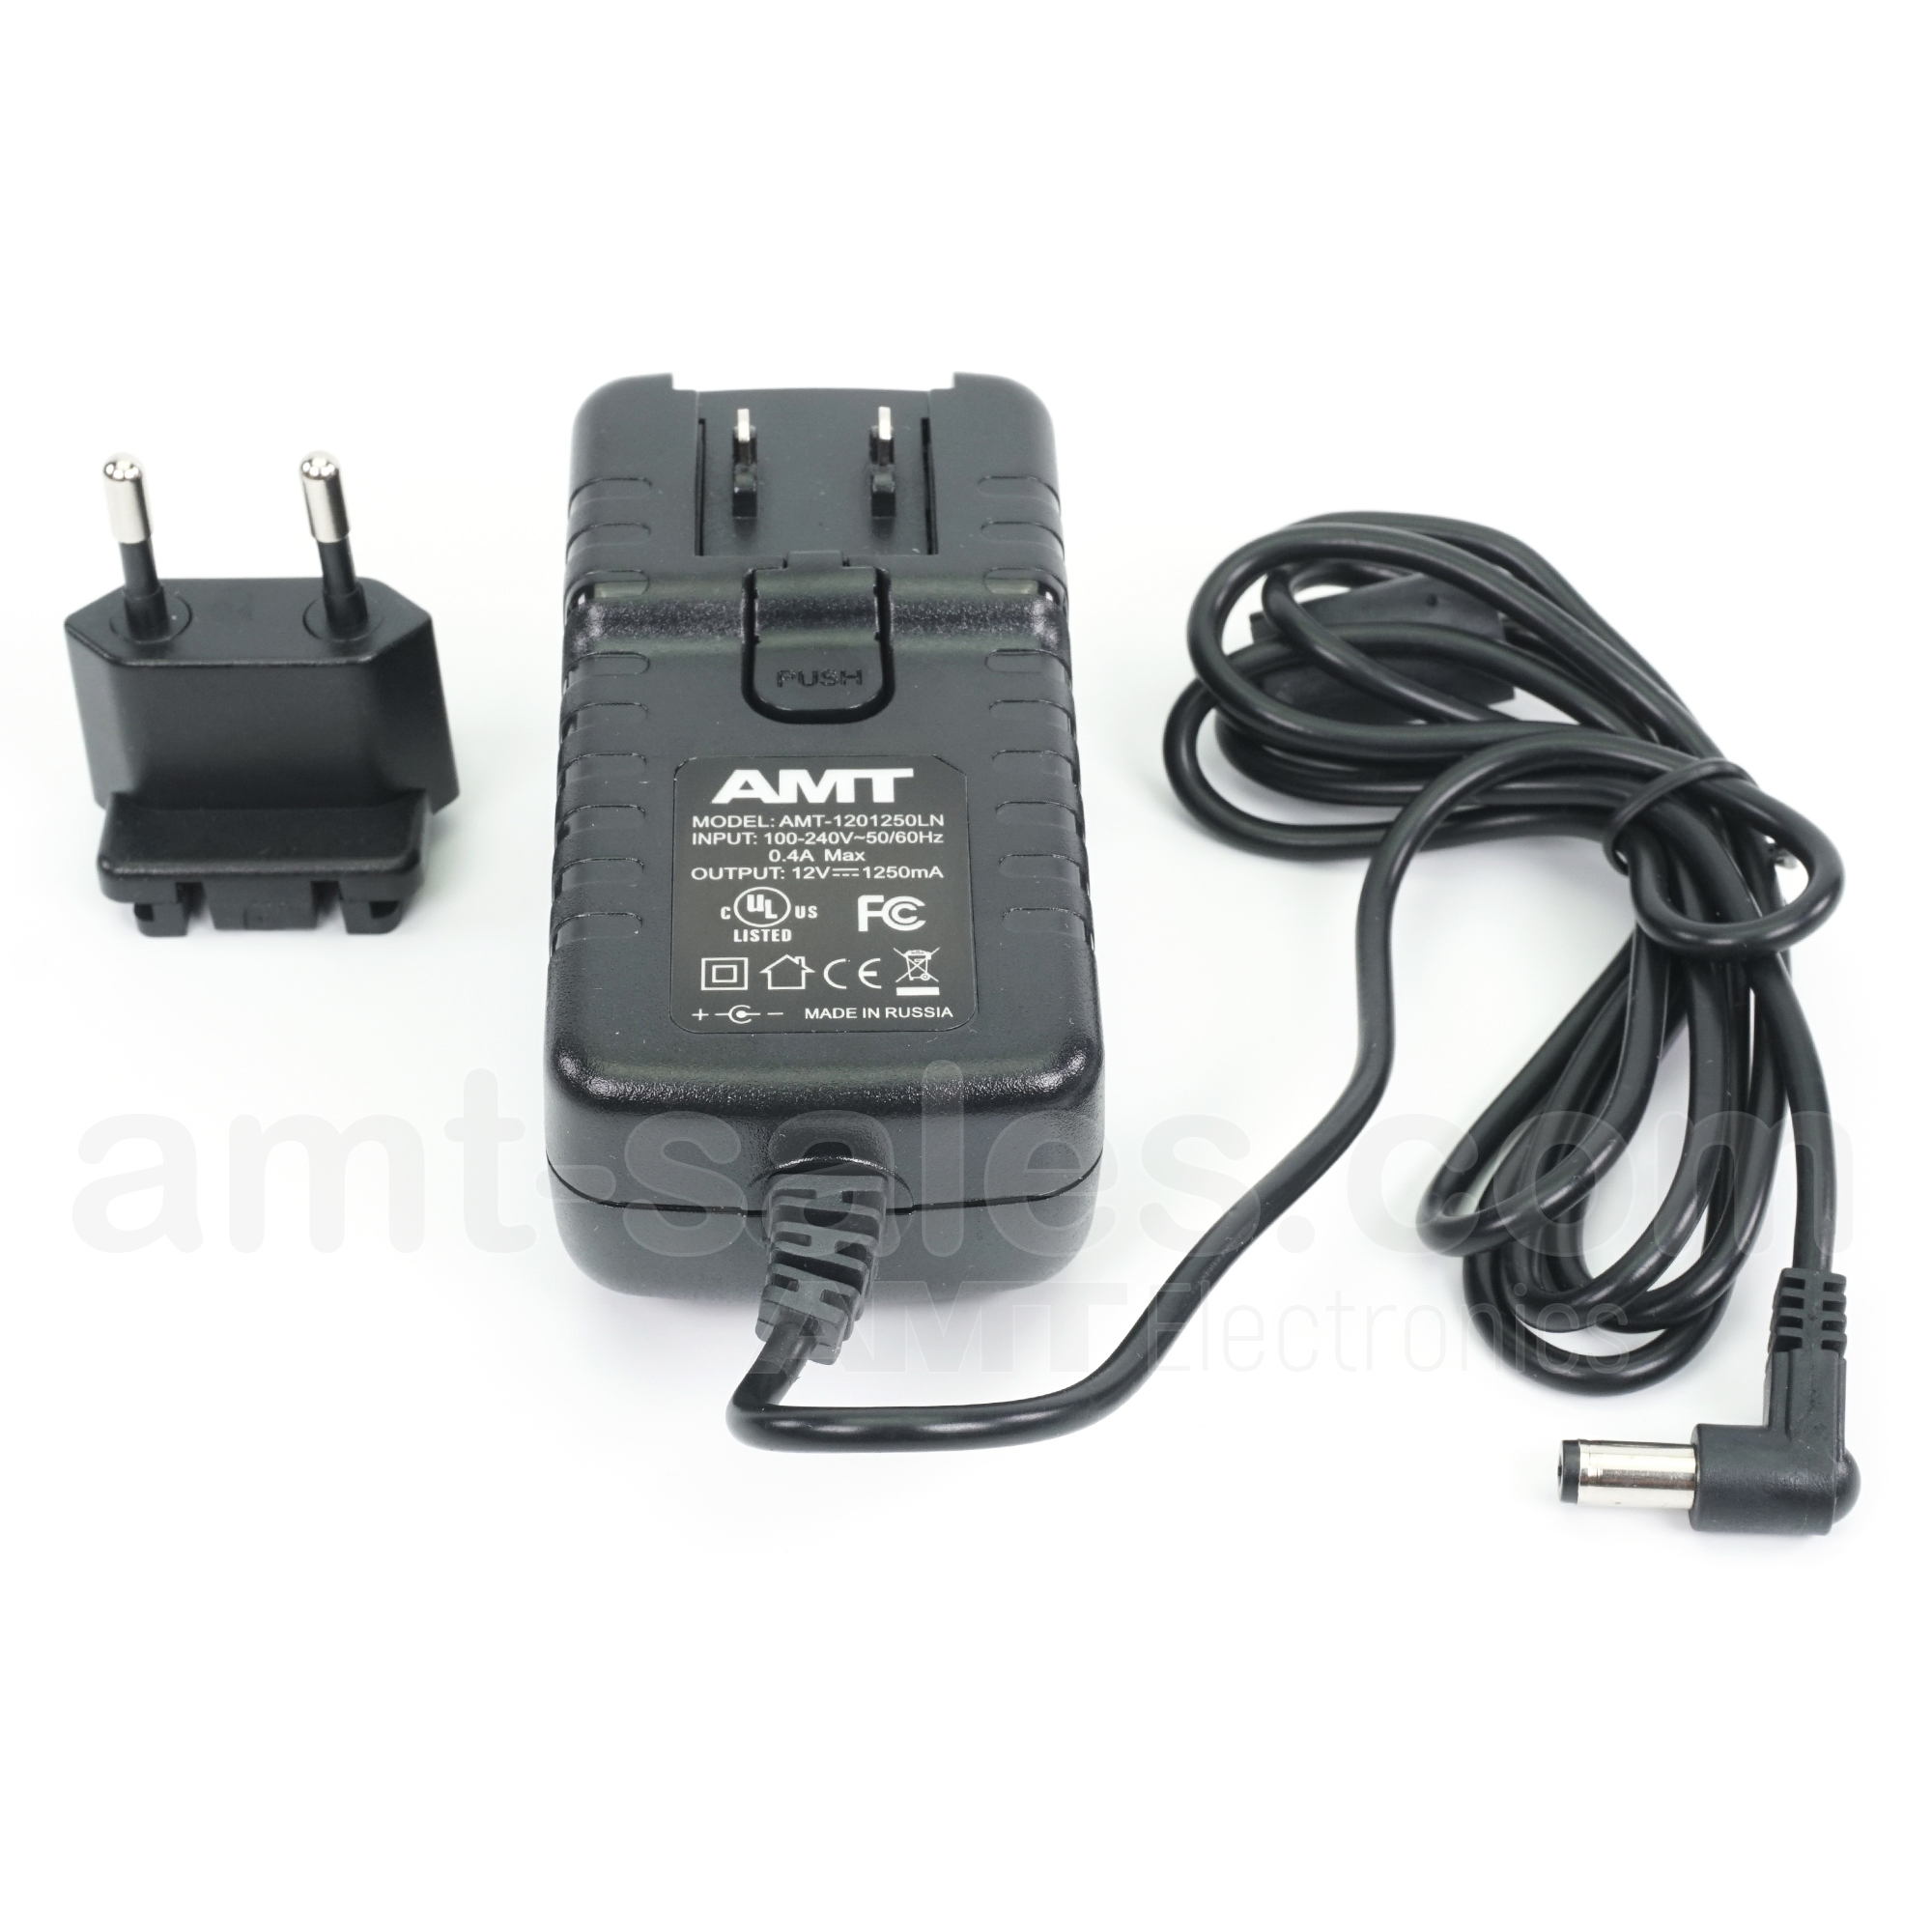 AMT DC 12V, 1.25А AC/DC - Noiseless AC/DC Adapter